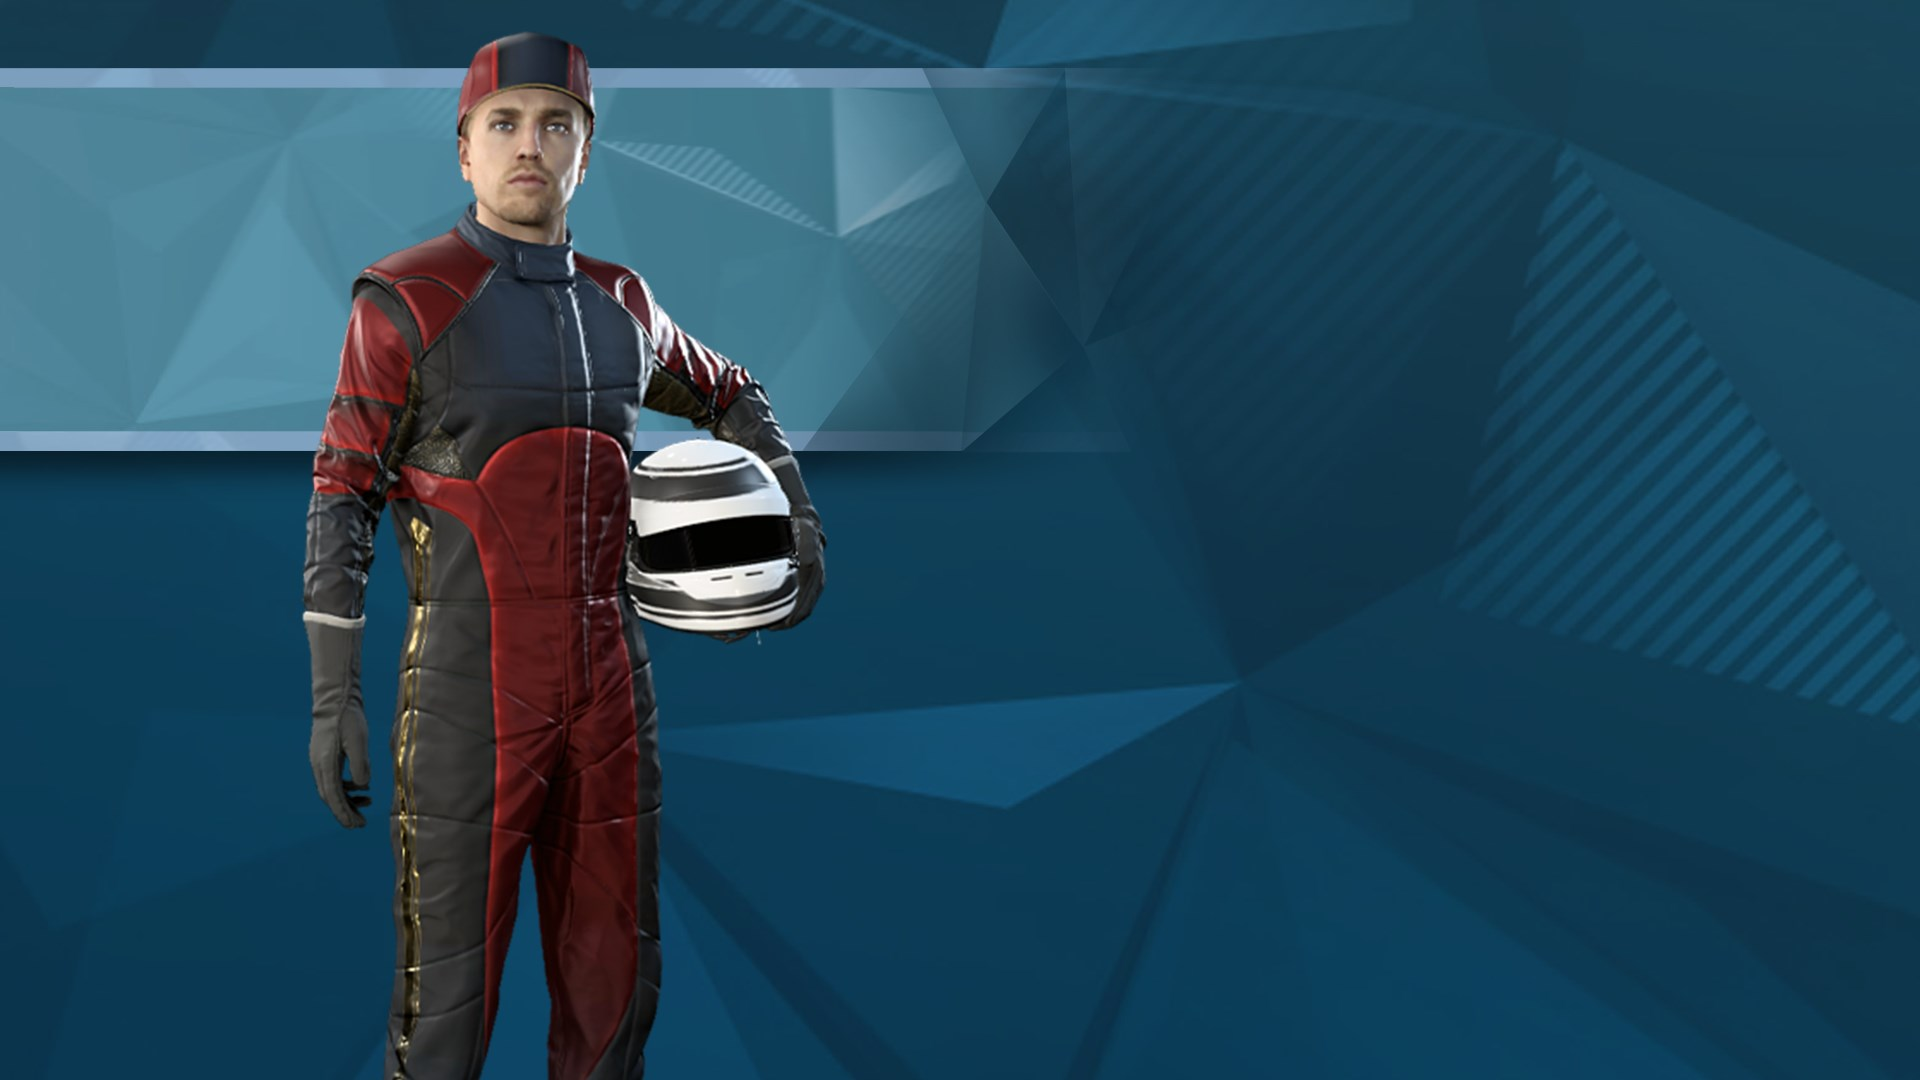 F1® 2019: Suit 'Out to Play'